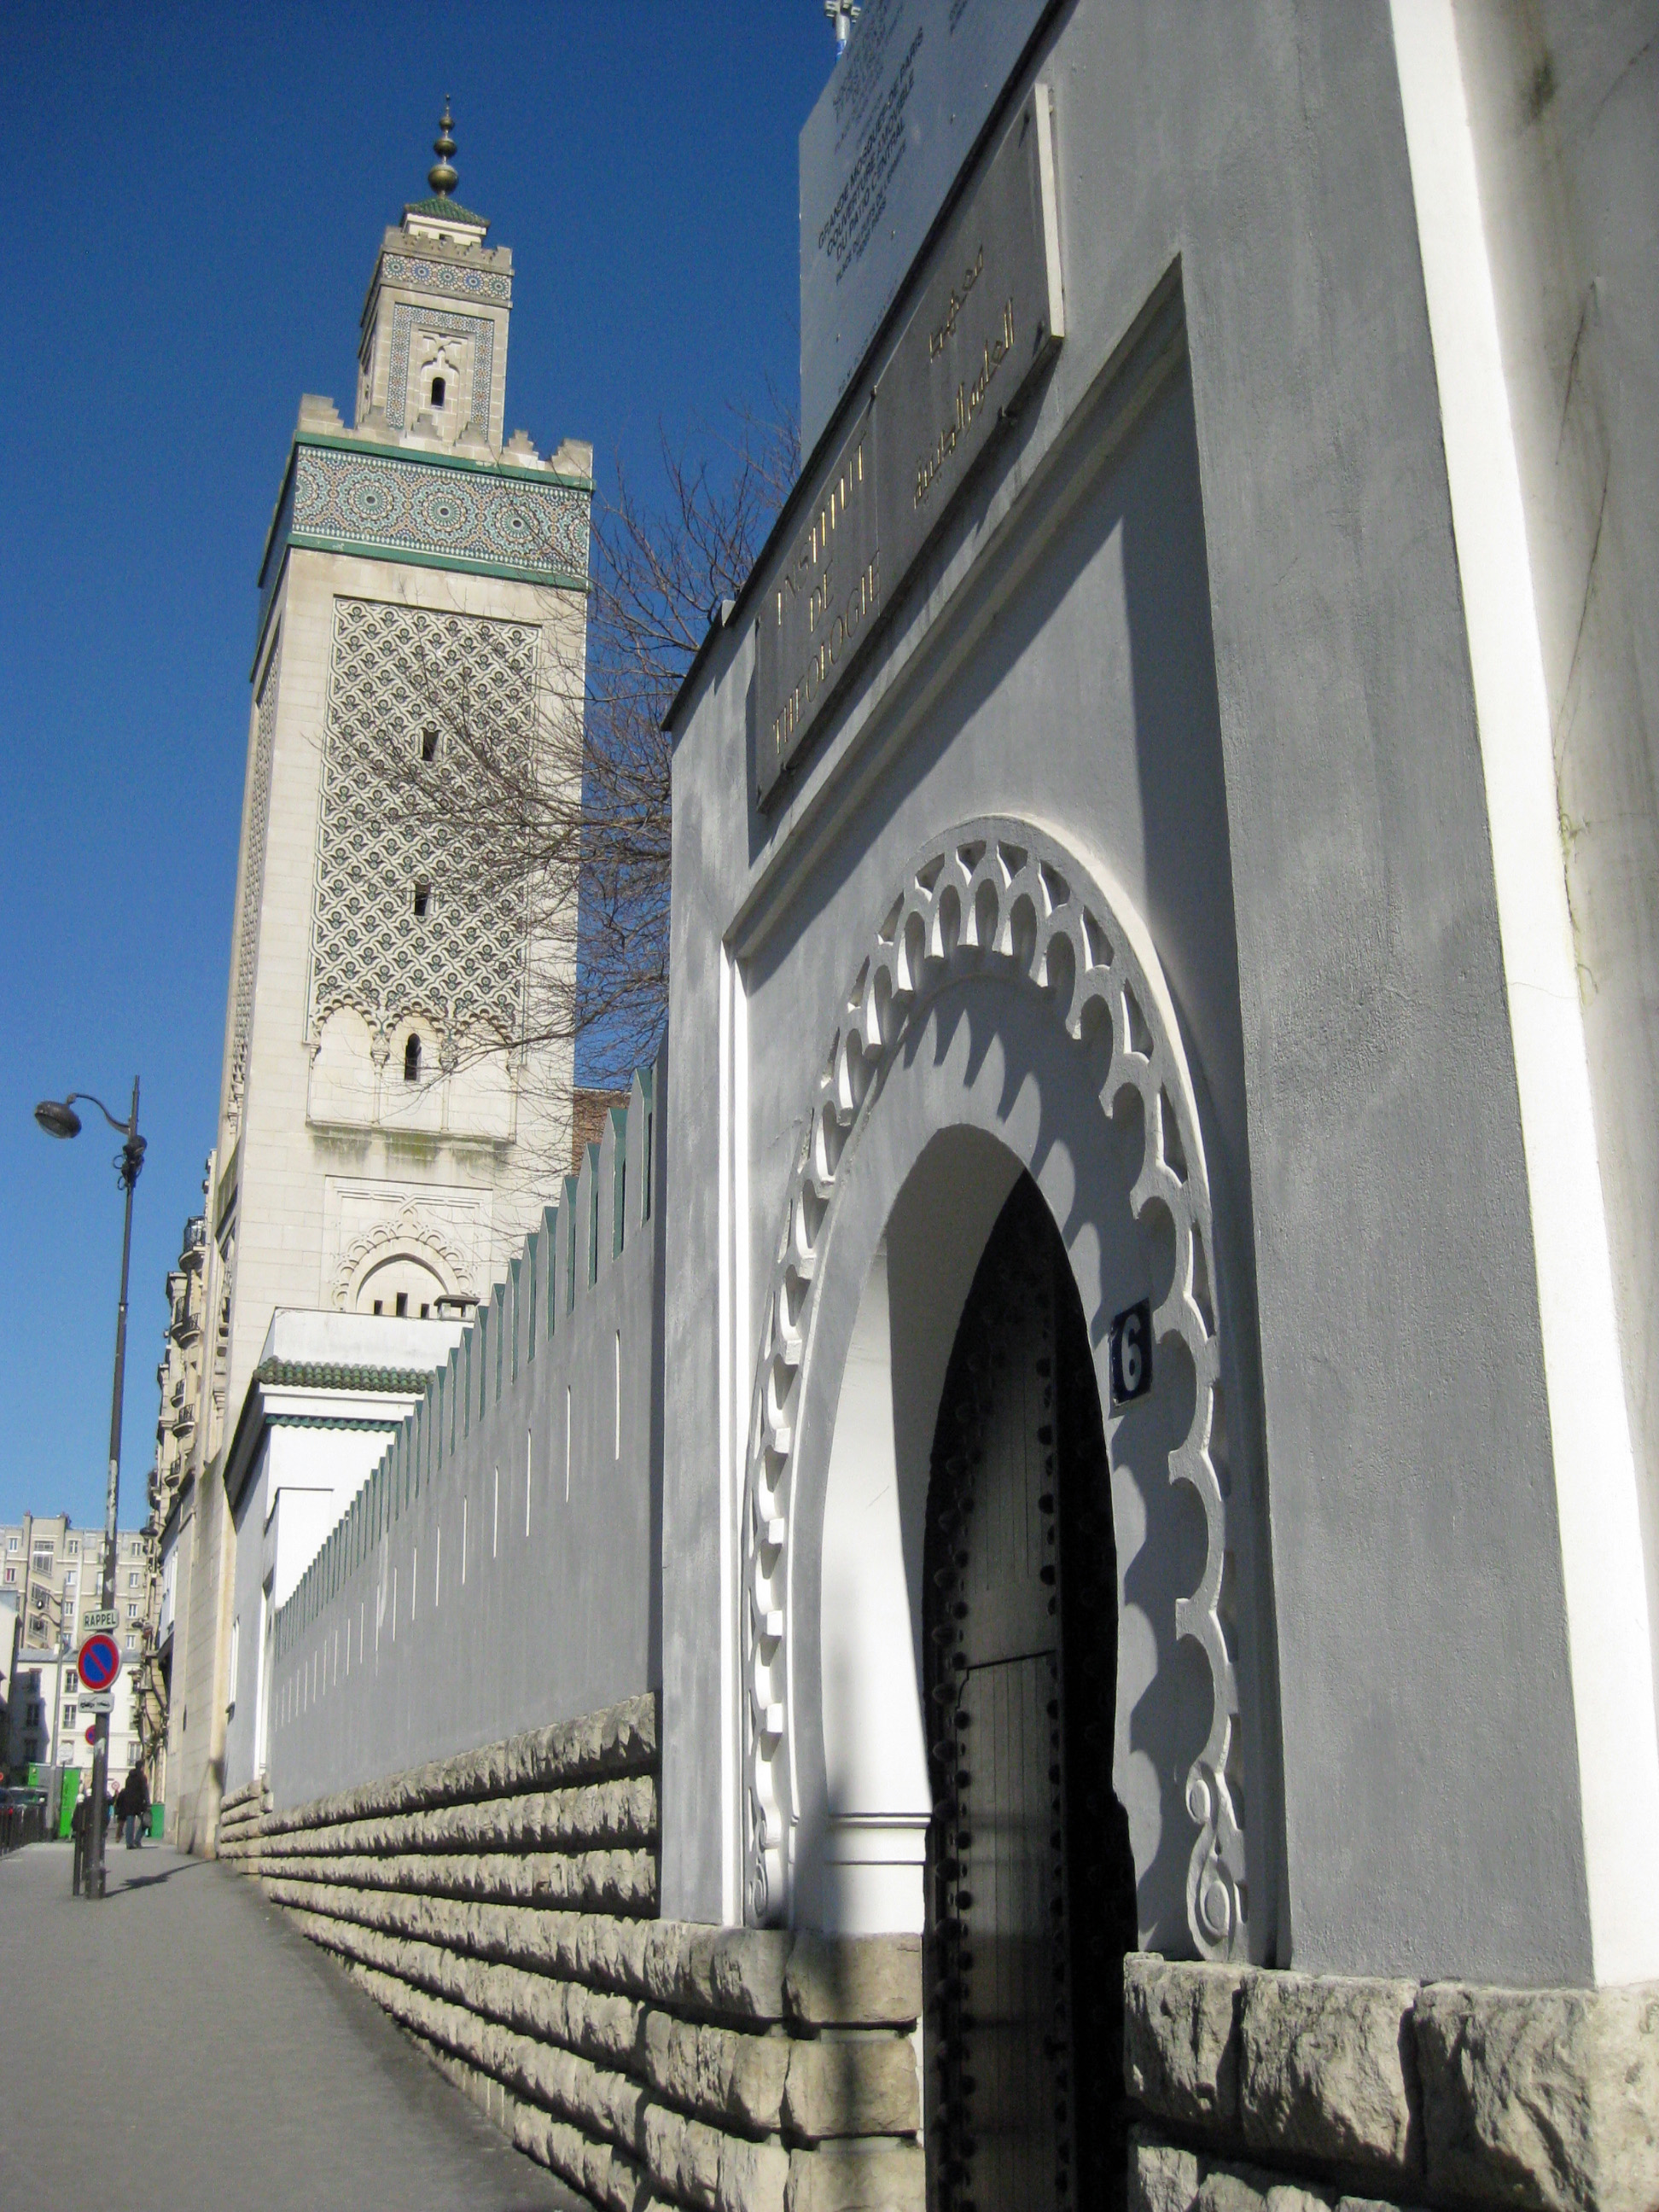 Mosquee de Paris_by Marie Sophie Bock Digne (https://www.flickr.com/photos/planetevivante/)